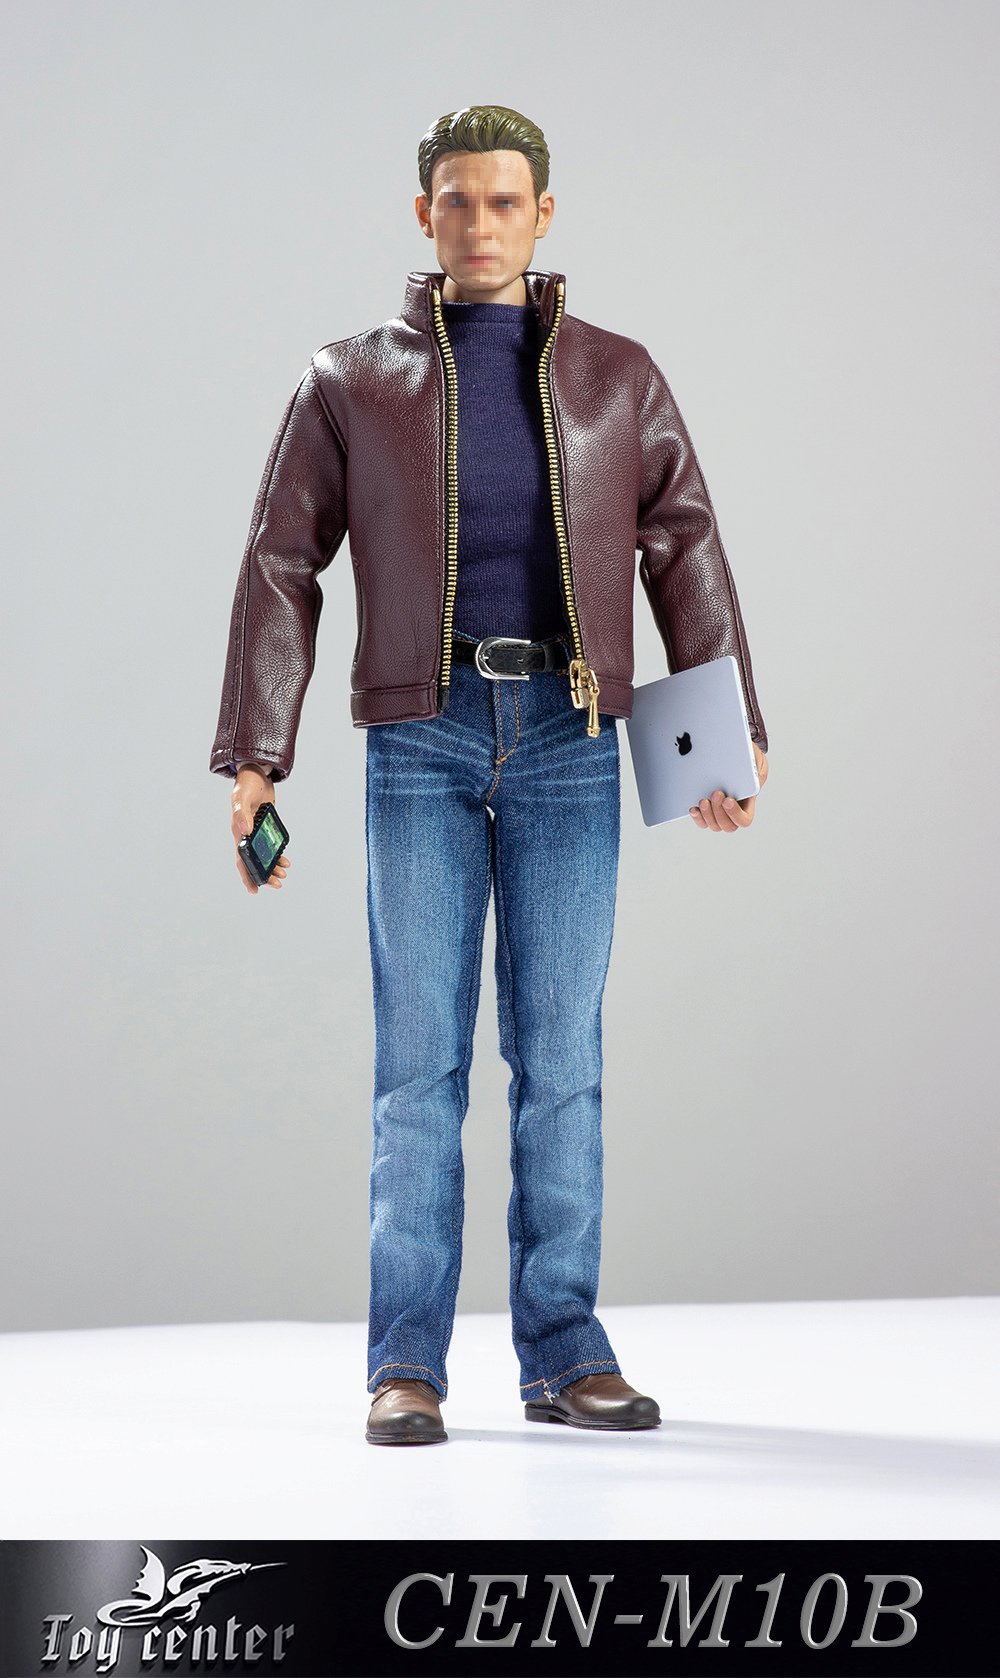 clothes - NEW PRODUCT: Toy center: 1/6 US team trend leather suit - a total of three colors A / B / C (CEN-M10 #) 13141011